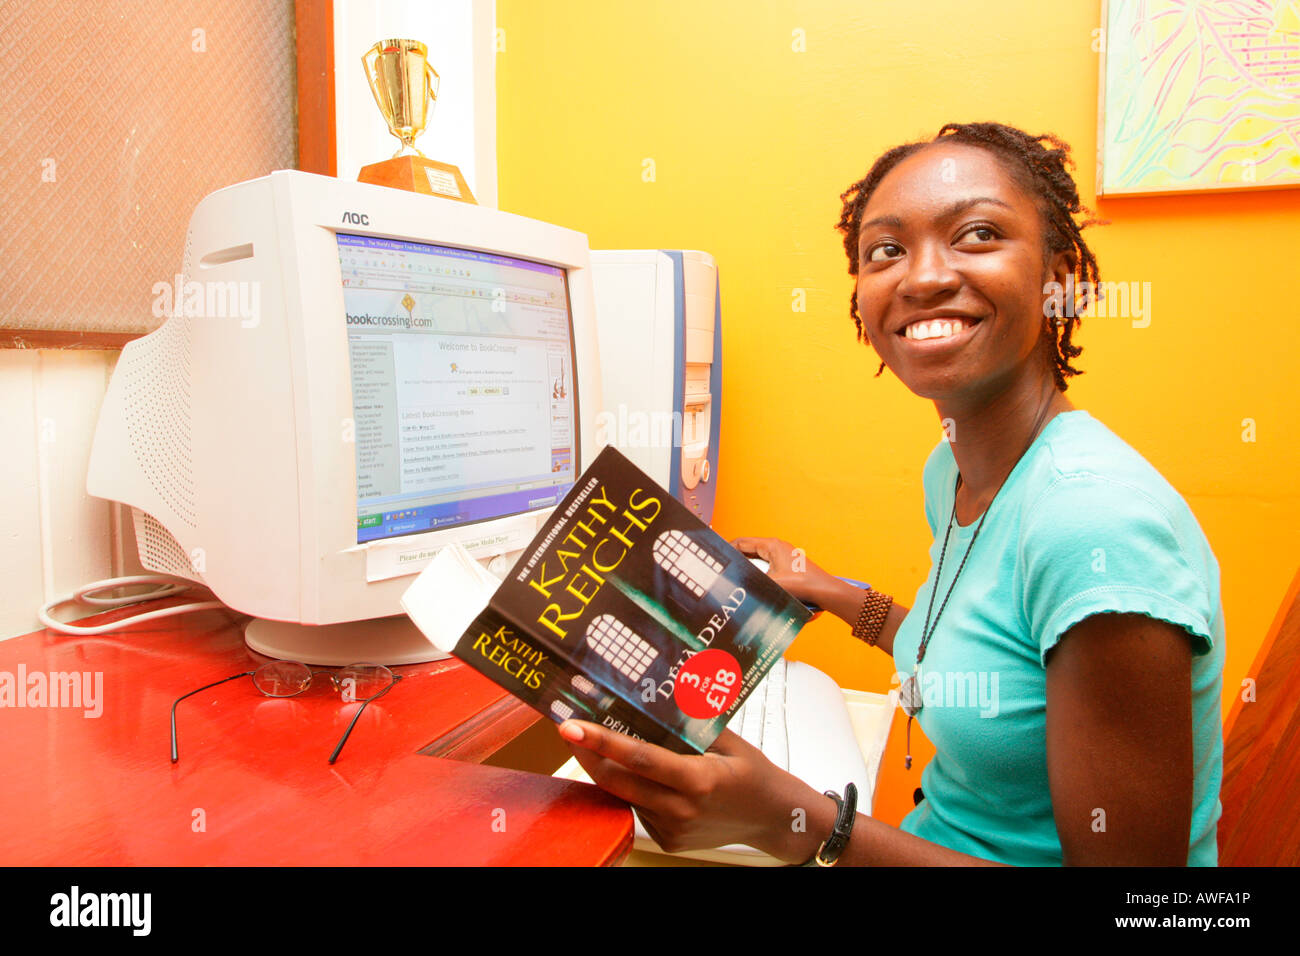 Student, young woman of African ethnicity working on computer, Georgetown, Guyana, South America - Stock Image